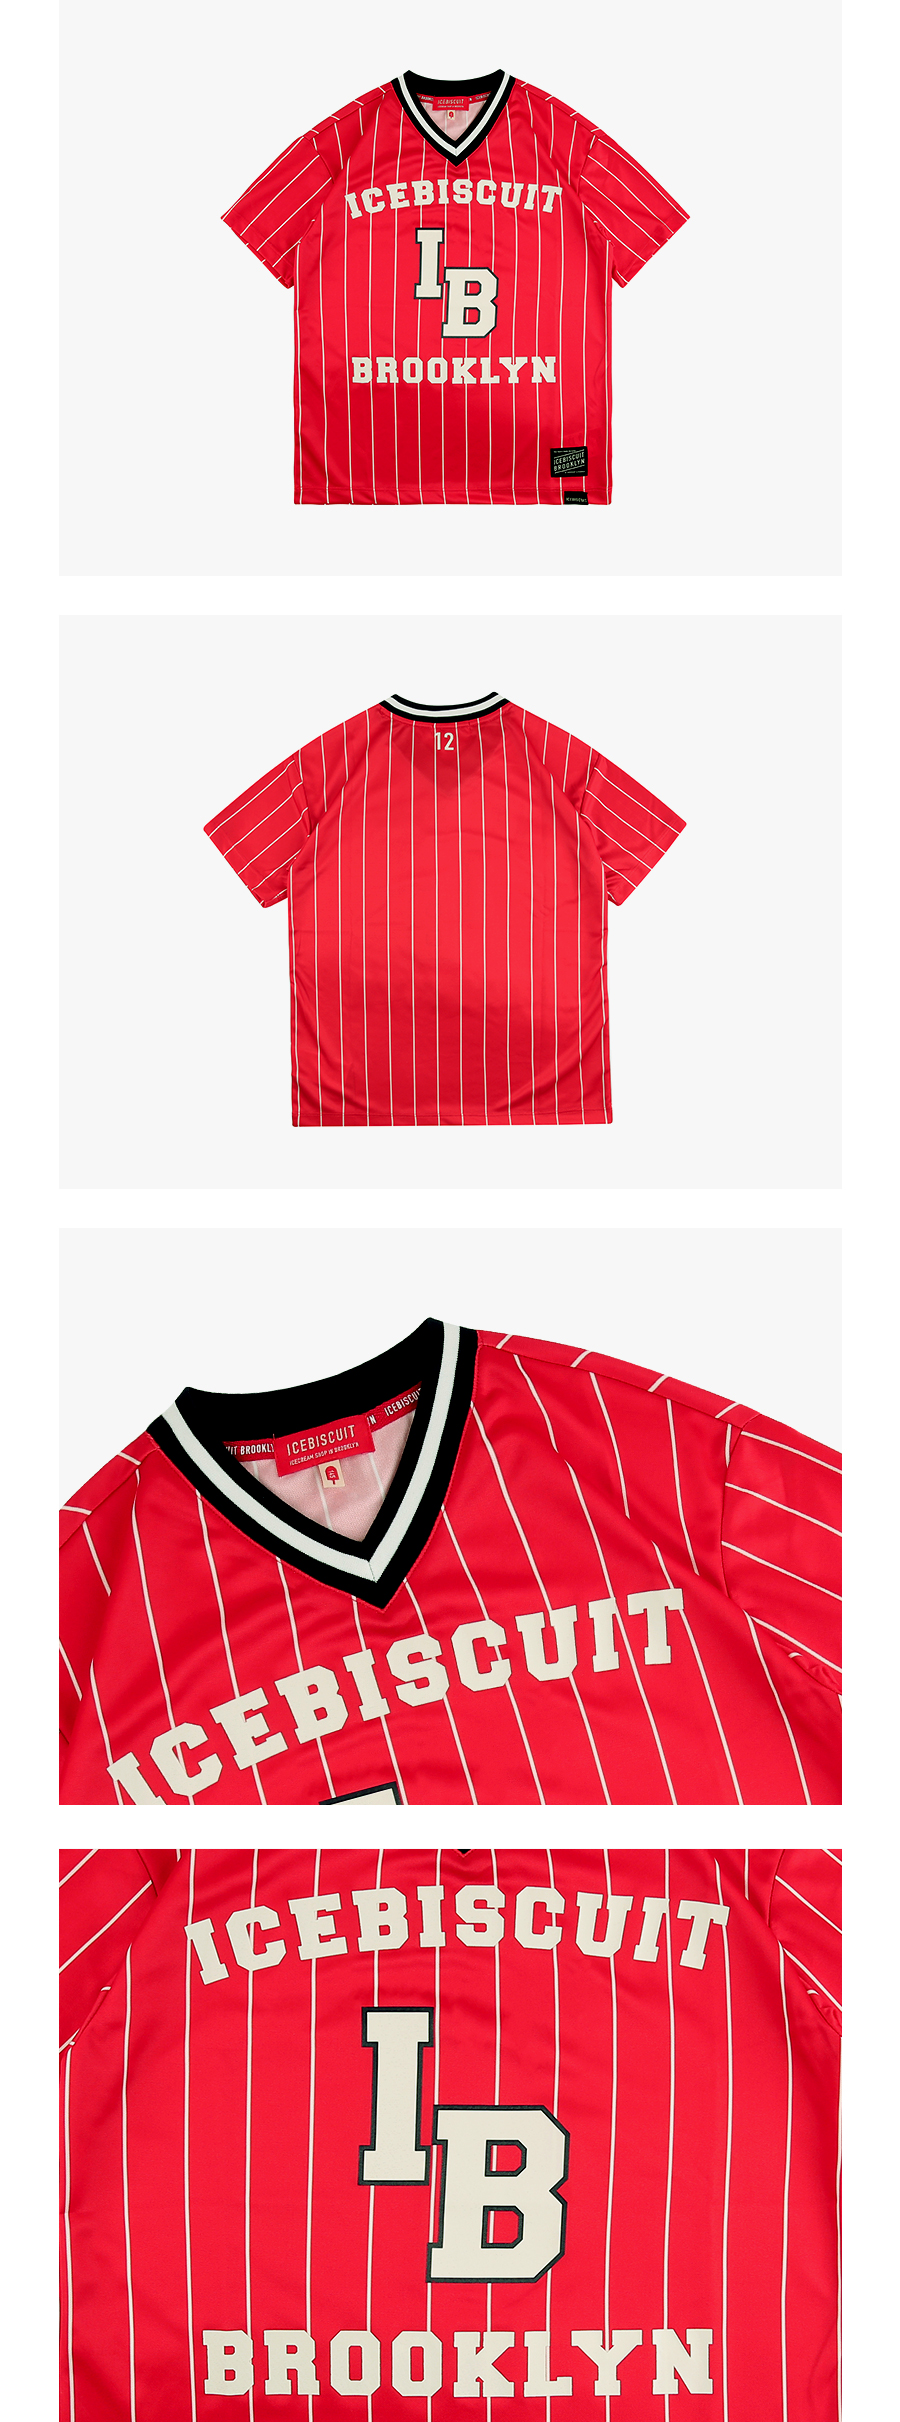 Icebiscuit brooklyn jersey tee 상세 이미지